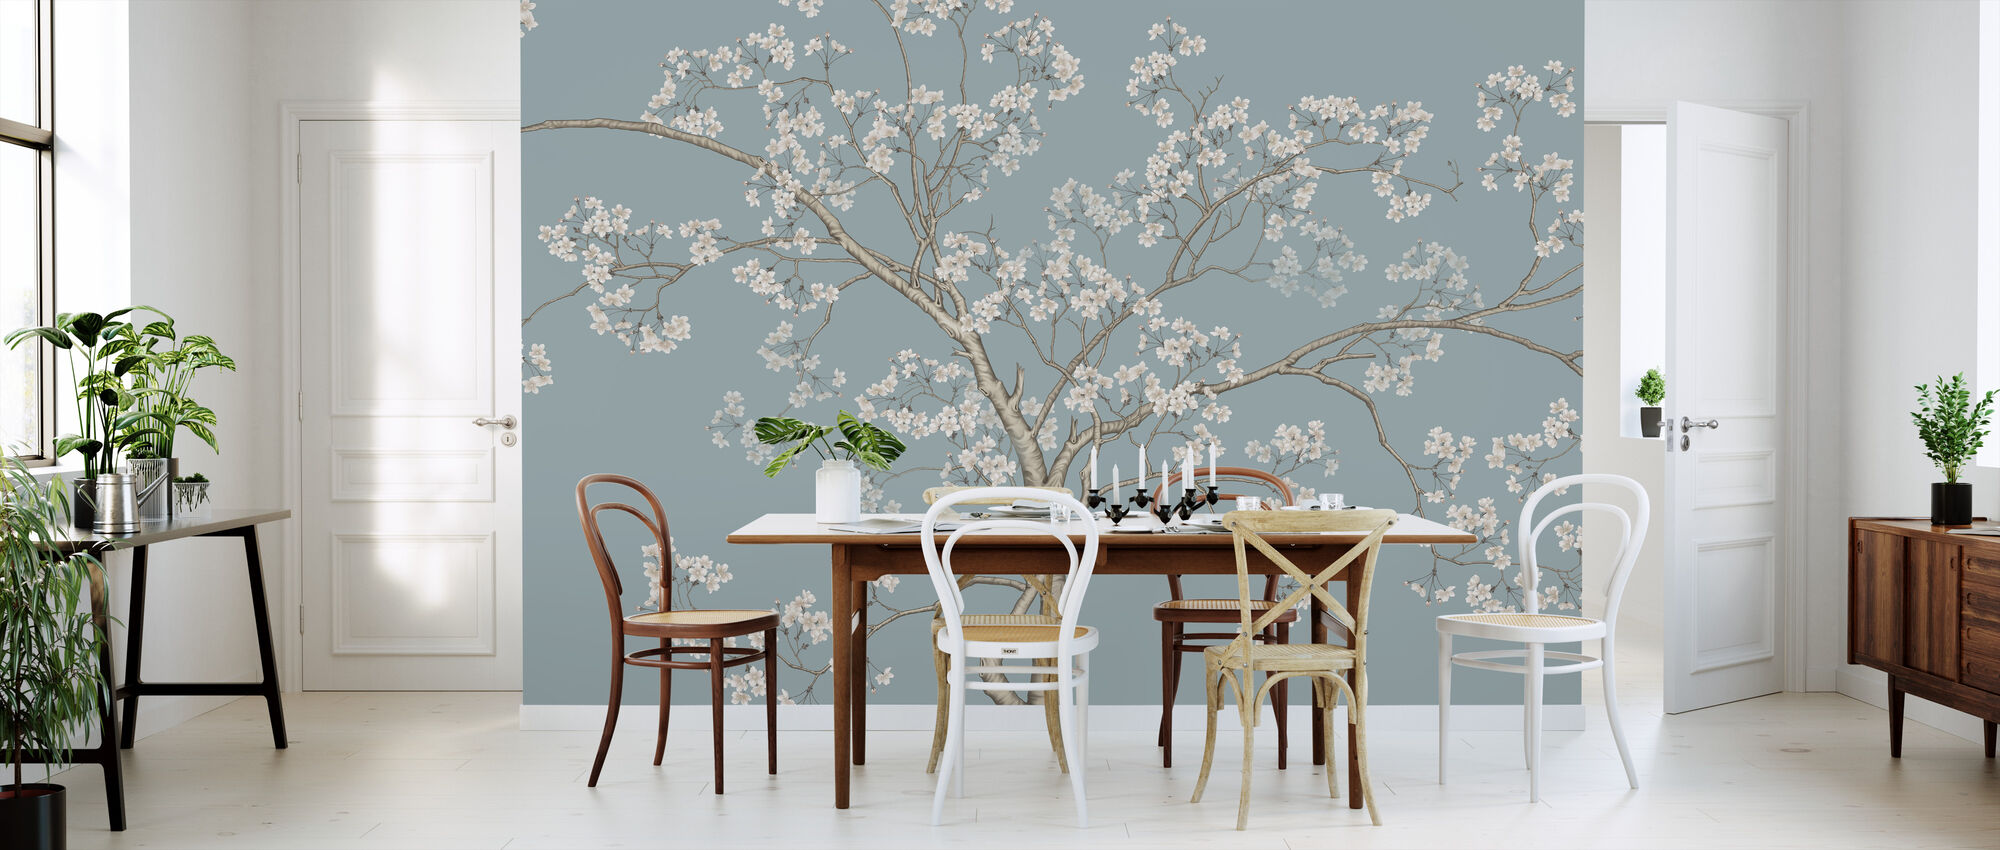 The Tree - Bluefin - Wallpaper - Kitchen